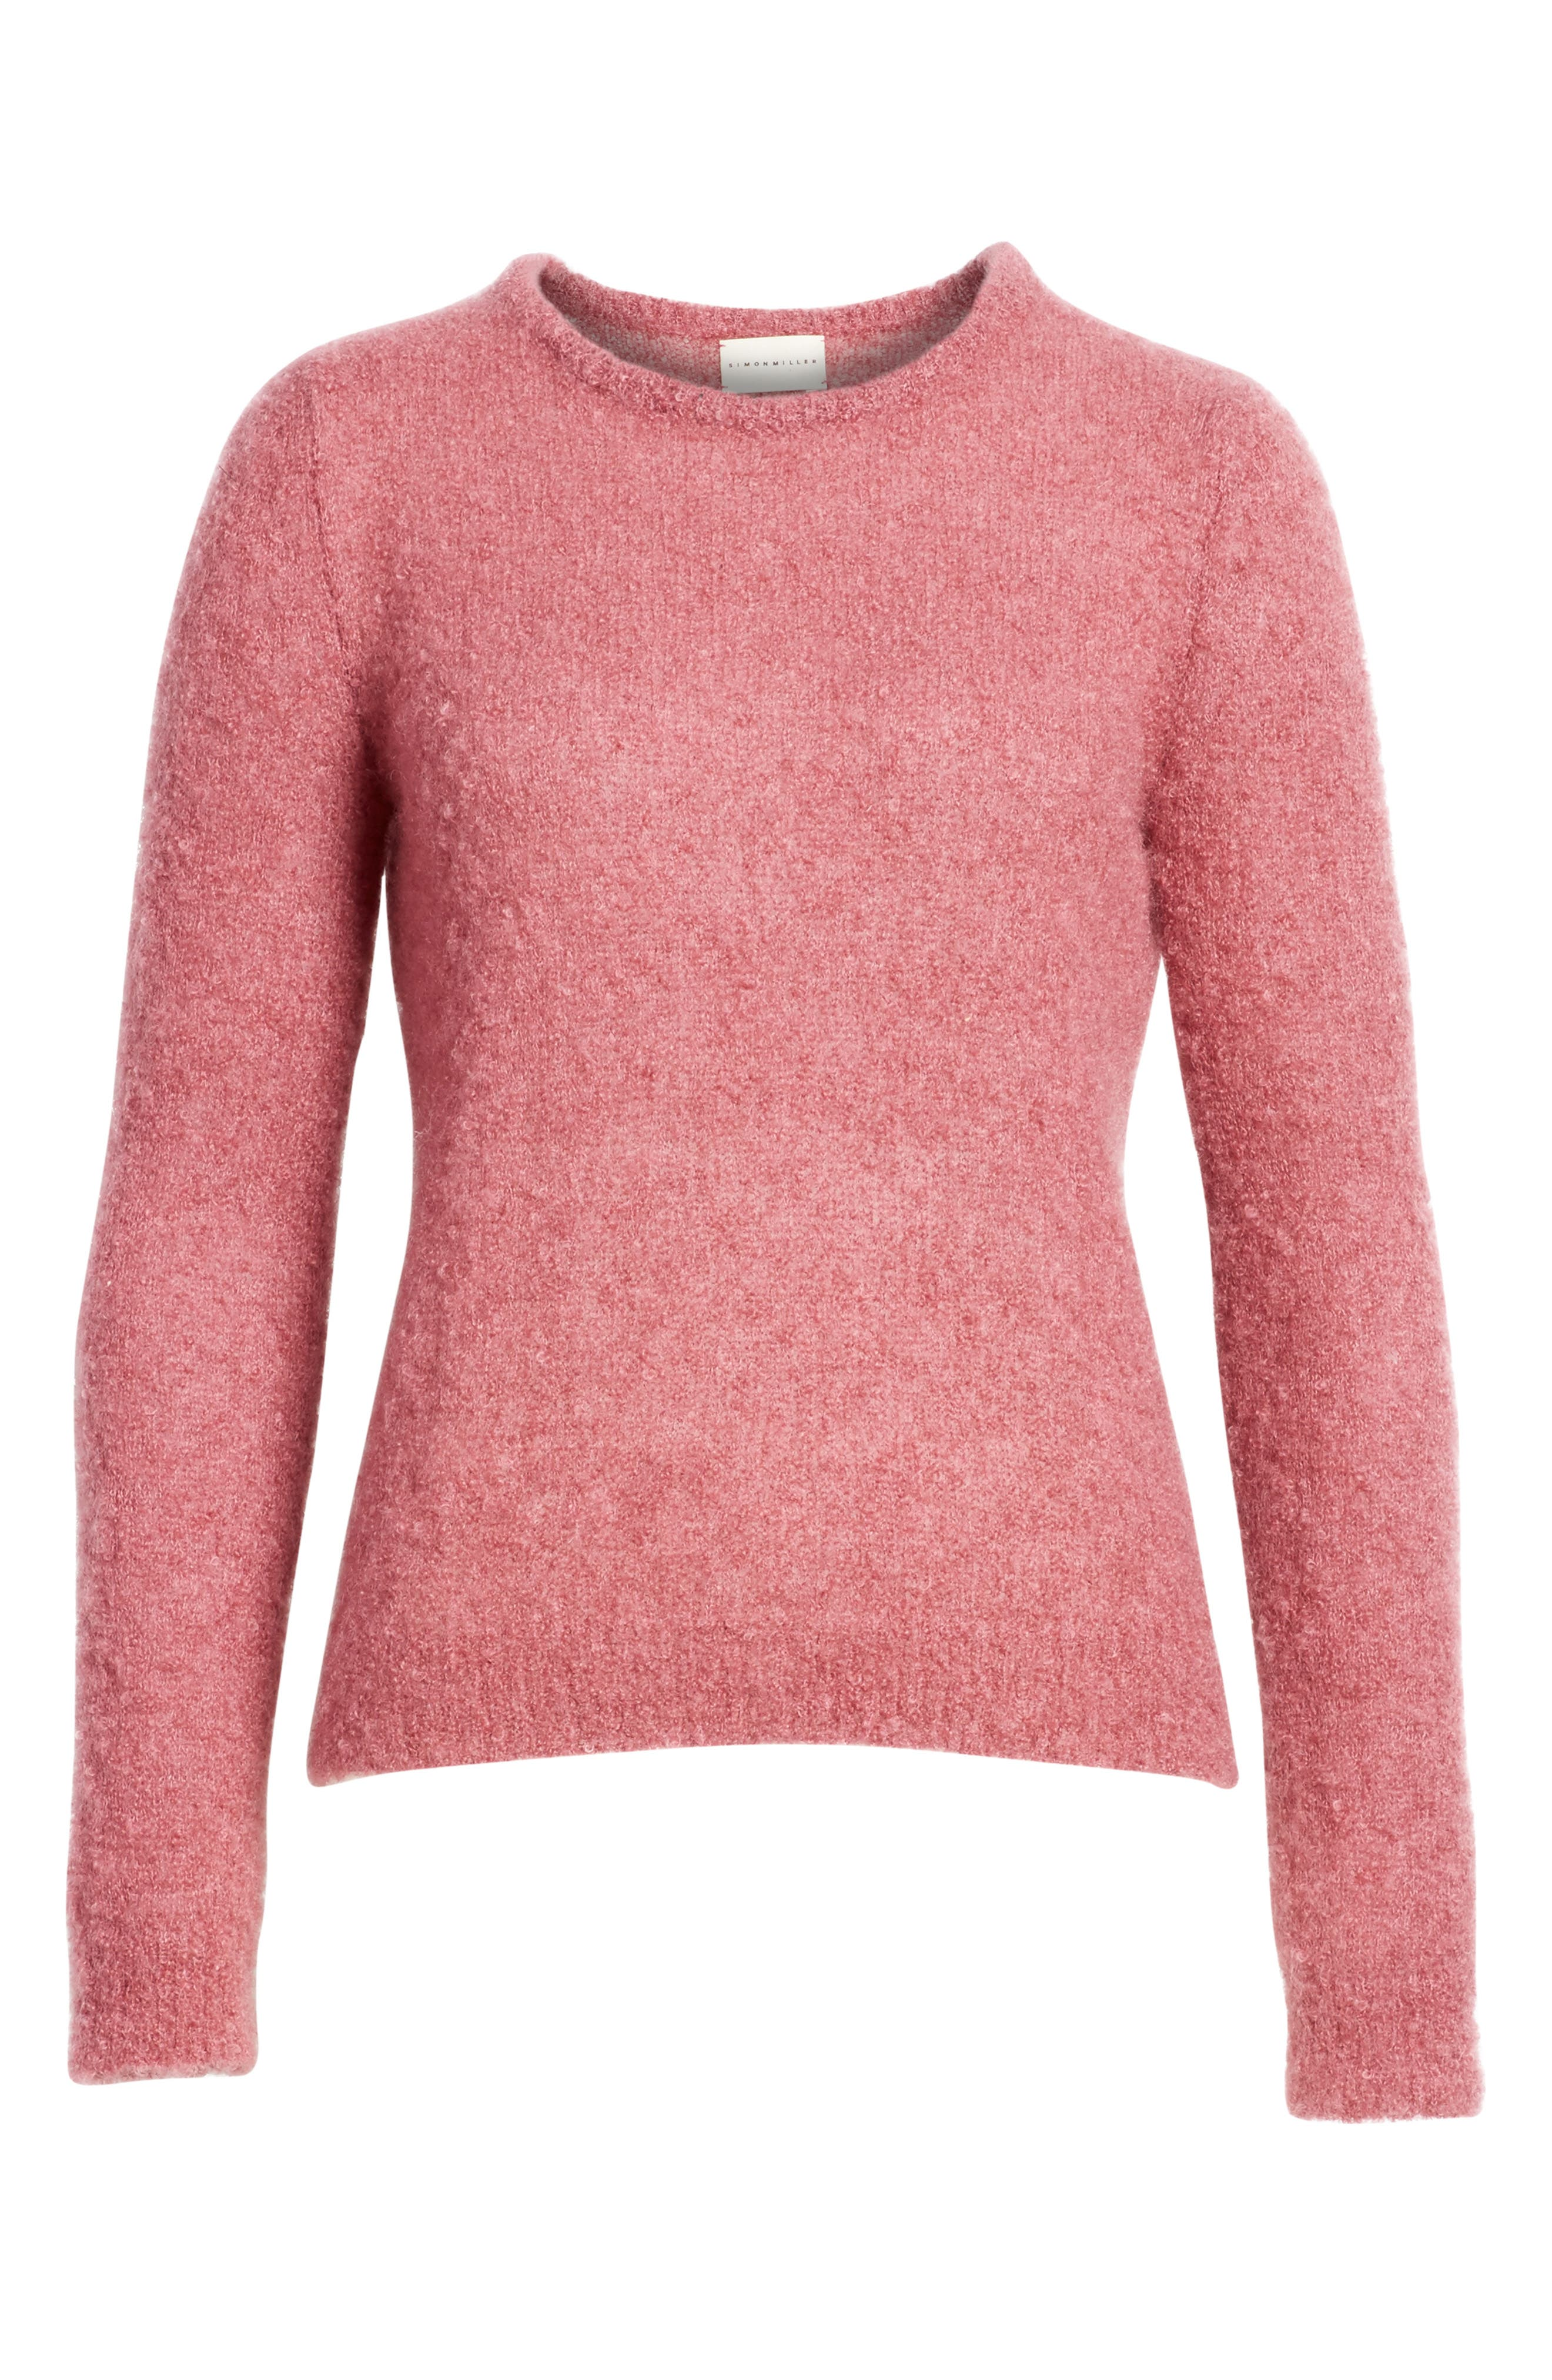 Tatum Mohair & Silk Sweater,                             Alternate thumbnail 6, color,                             Ruby Pink